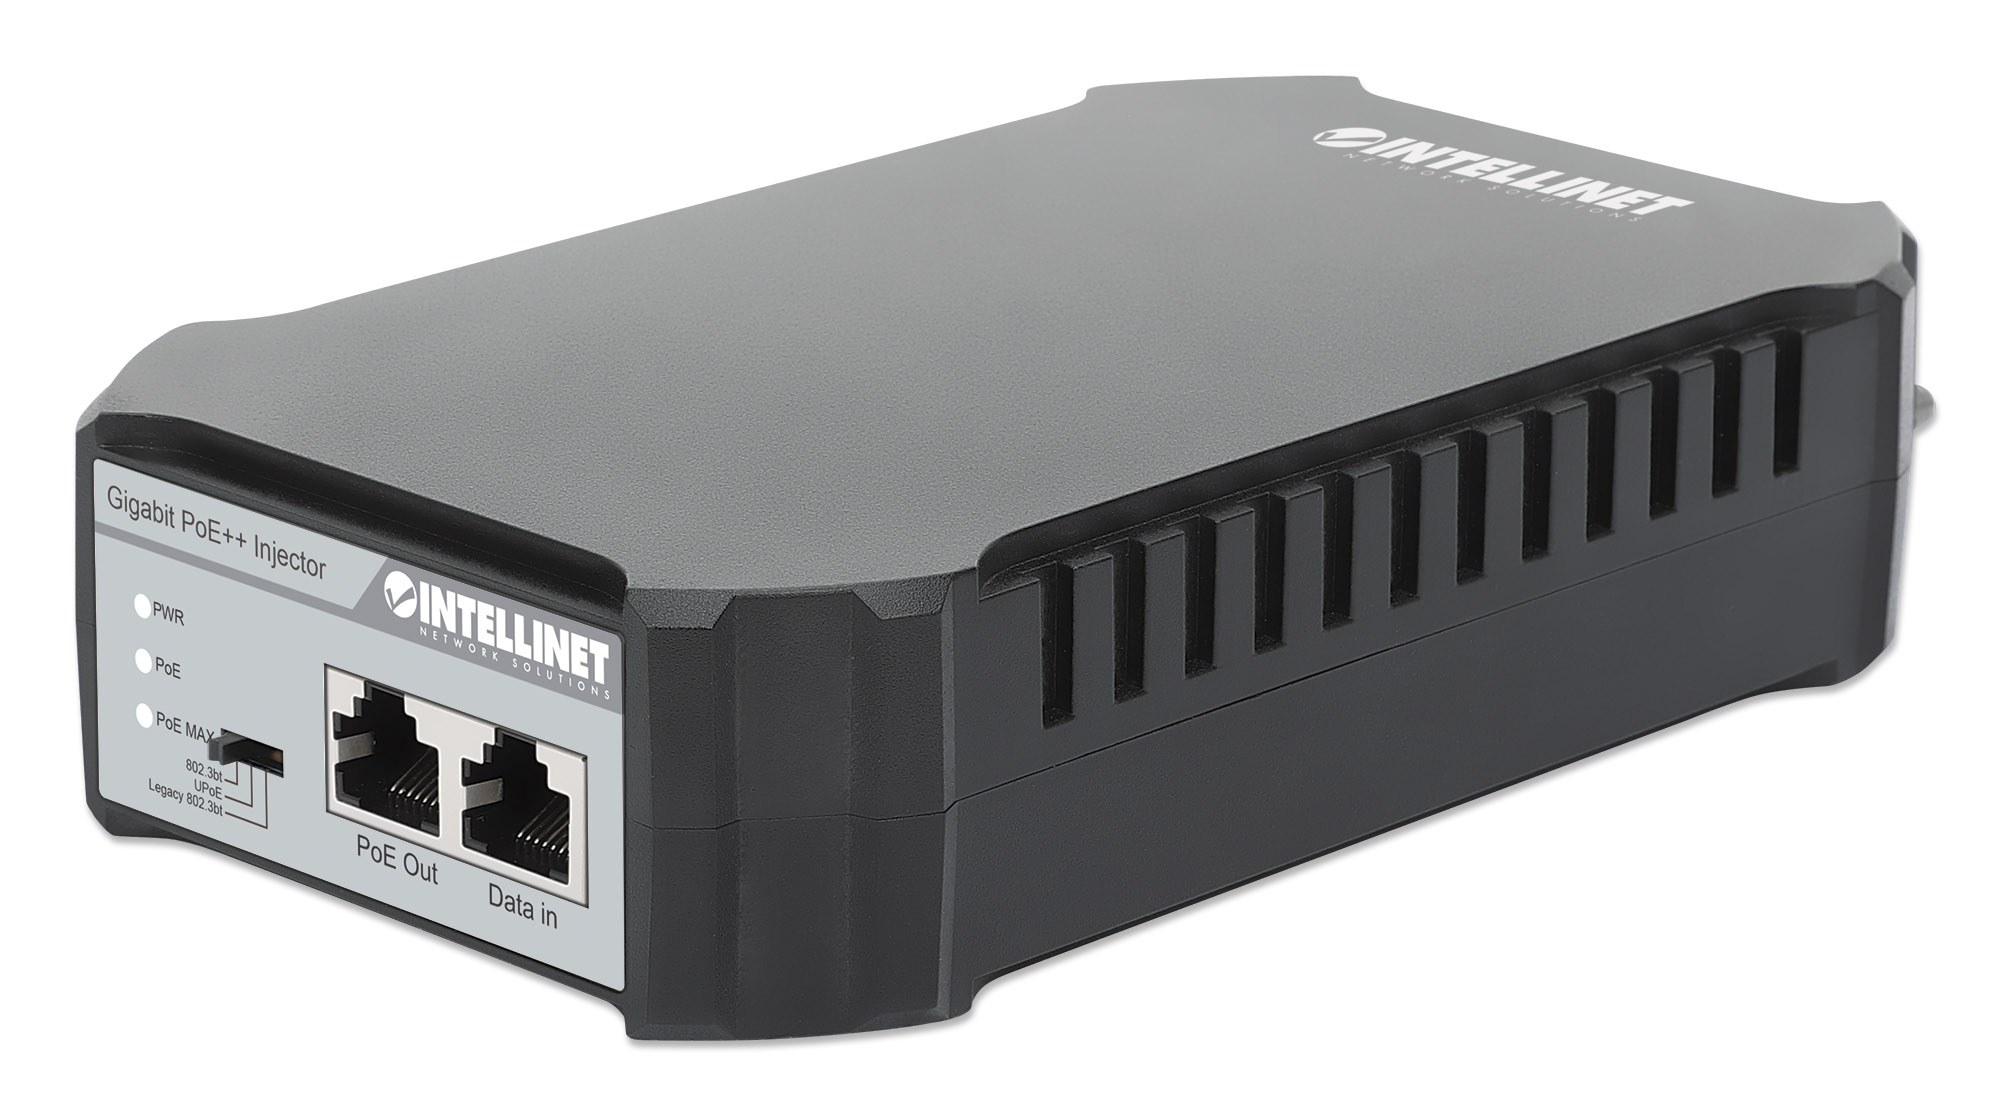 Gigabit Ultra PoE Injector